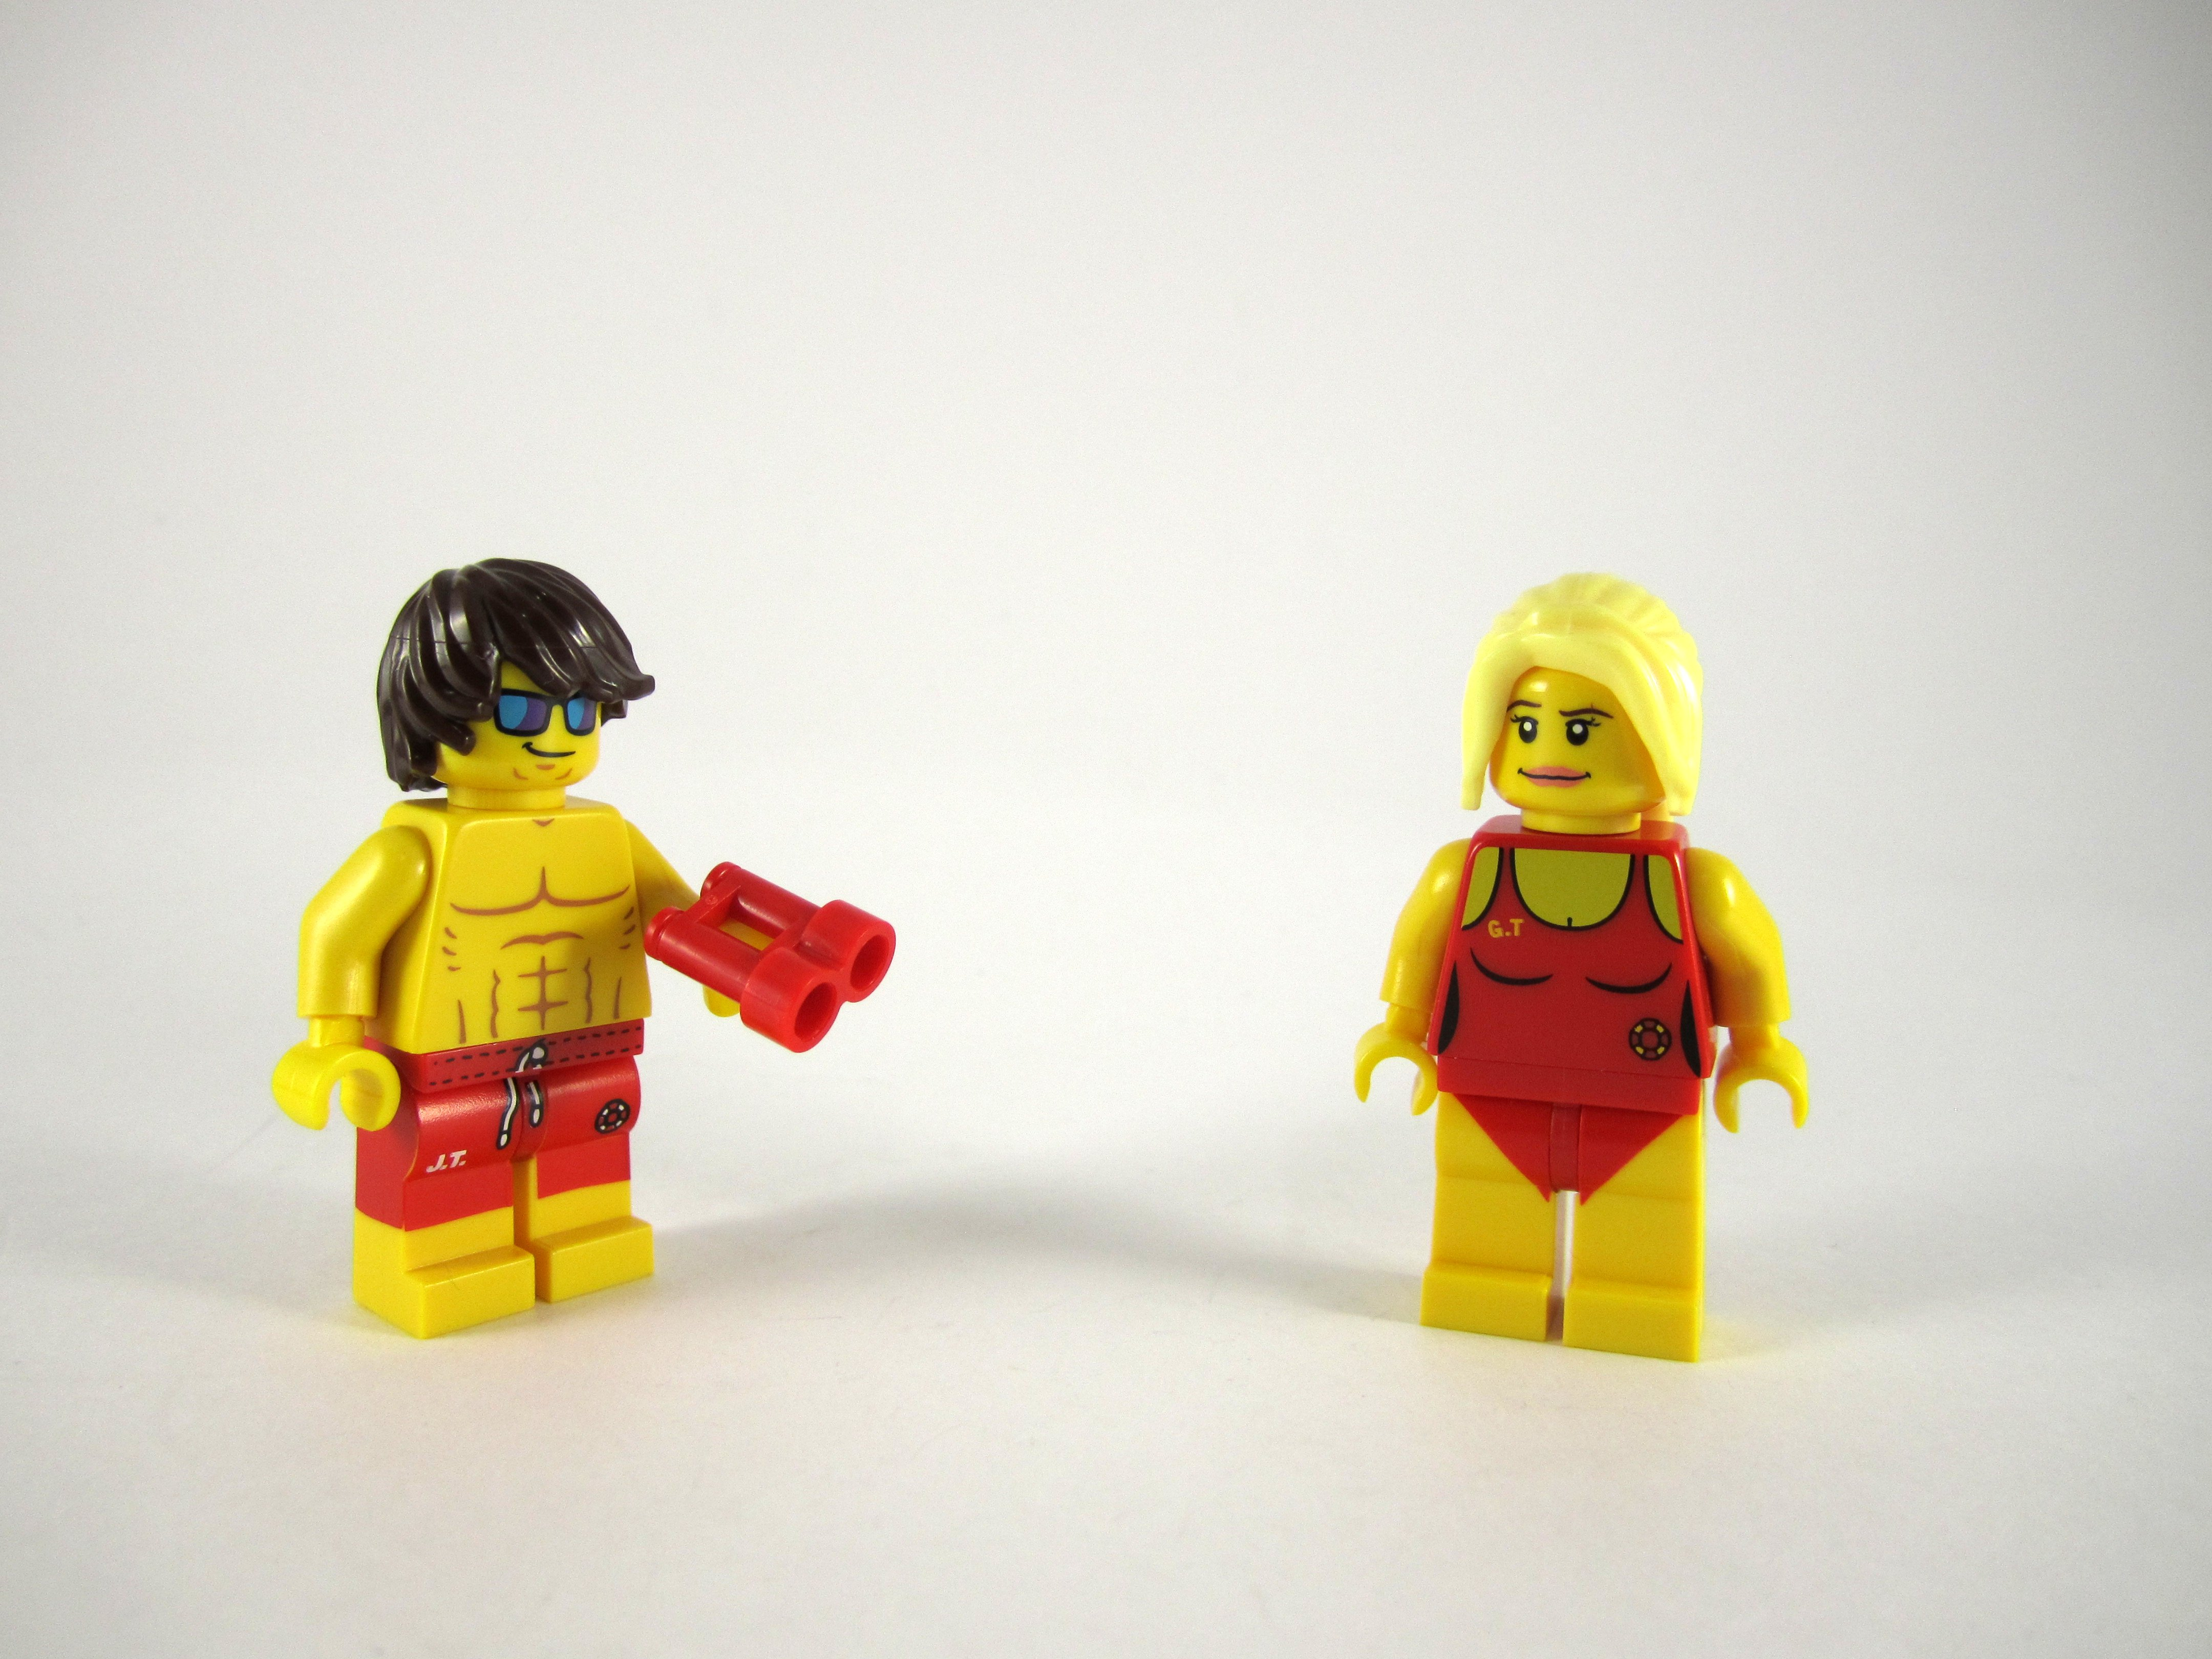 12 LEGO-MINIFIGURES SERIES X 1 RED FLOAT FOR THE LIFEGUARD SERIES 12 PARTS